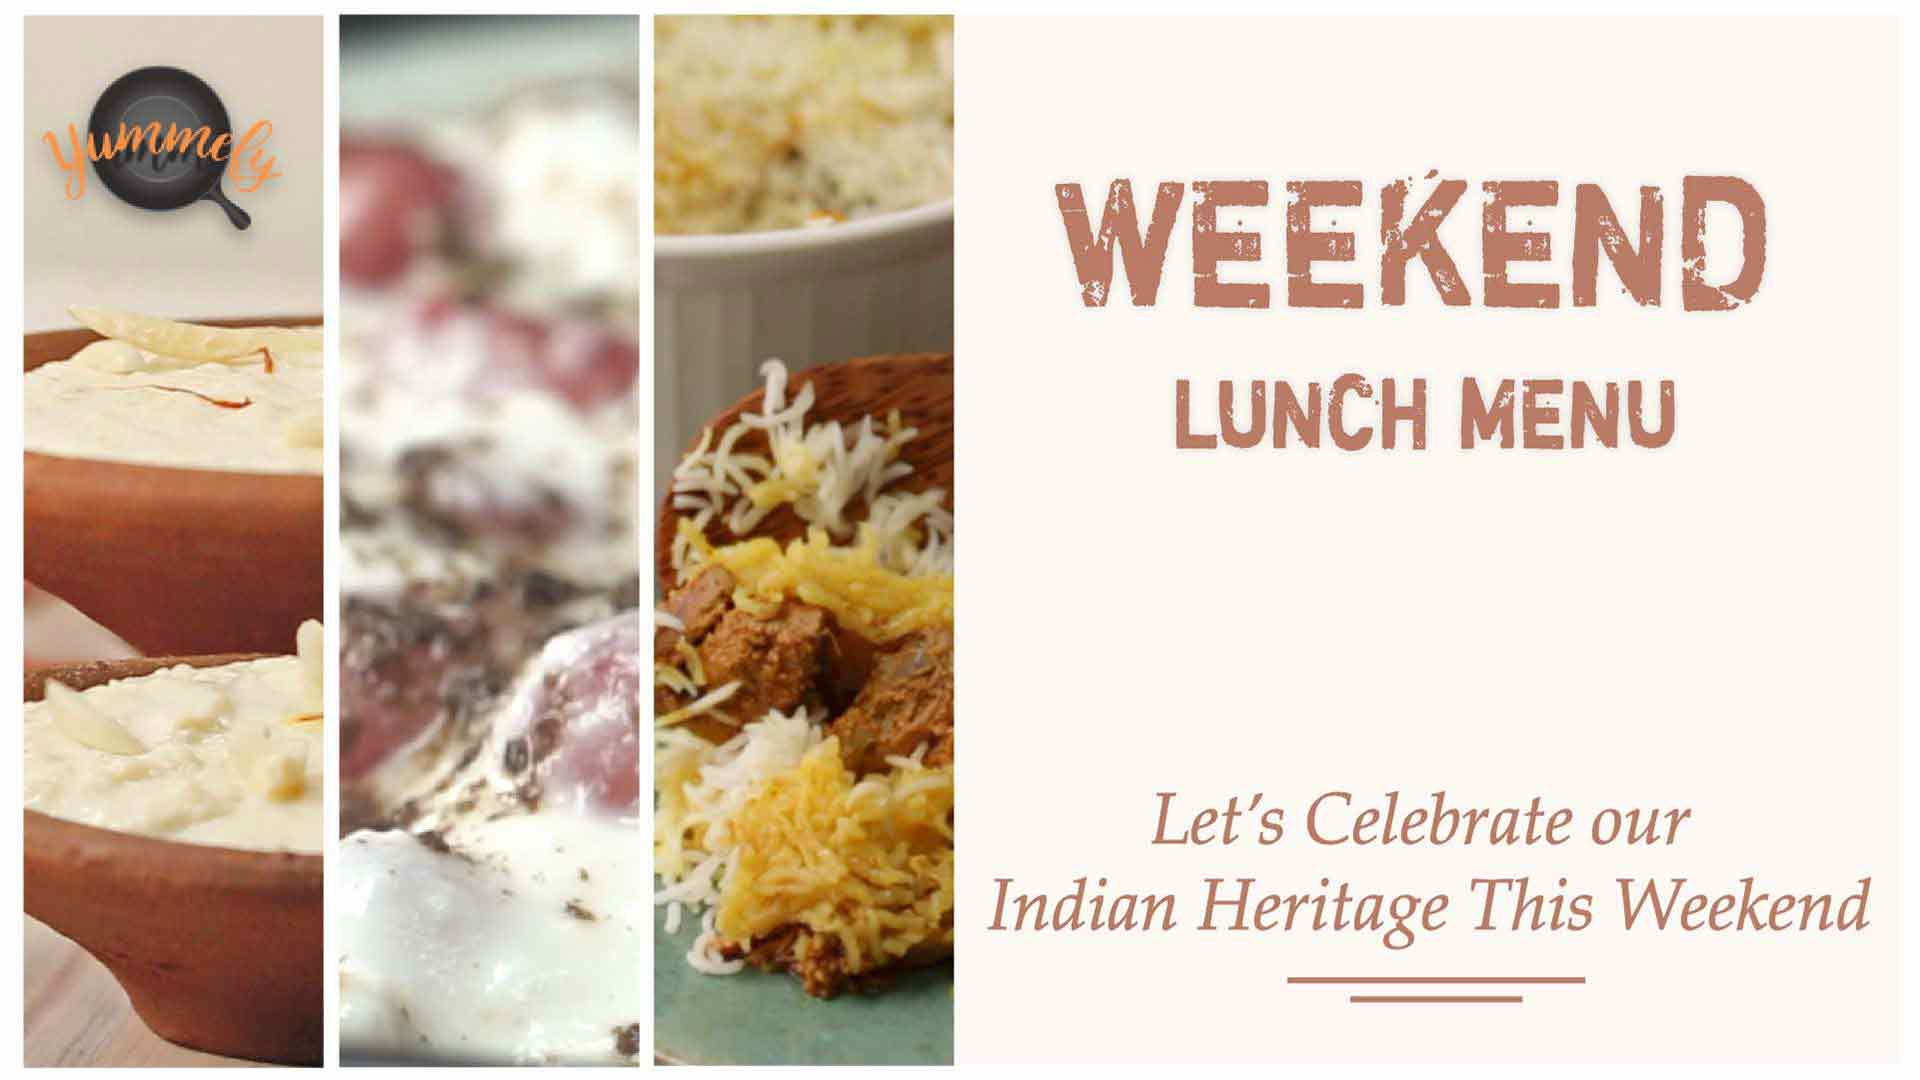 Weekend Lunch Menu | Celebrating Indian Heritage